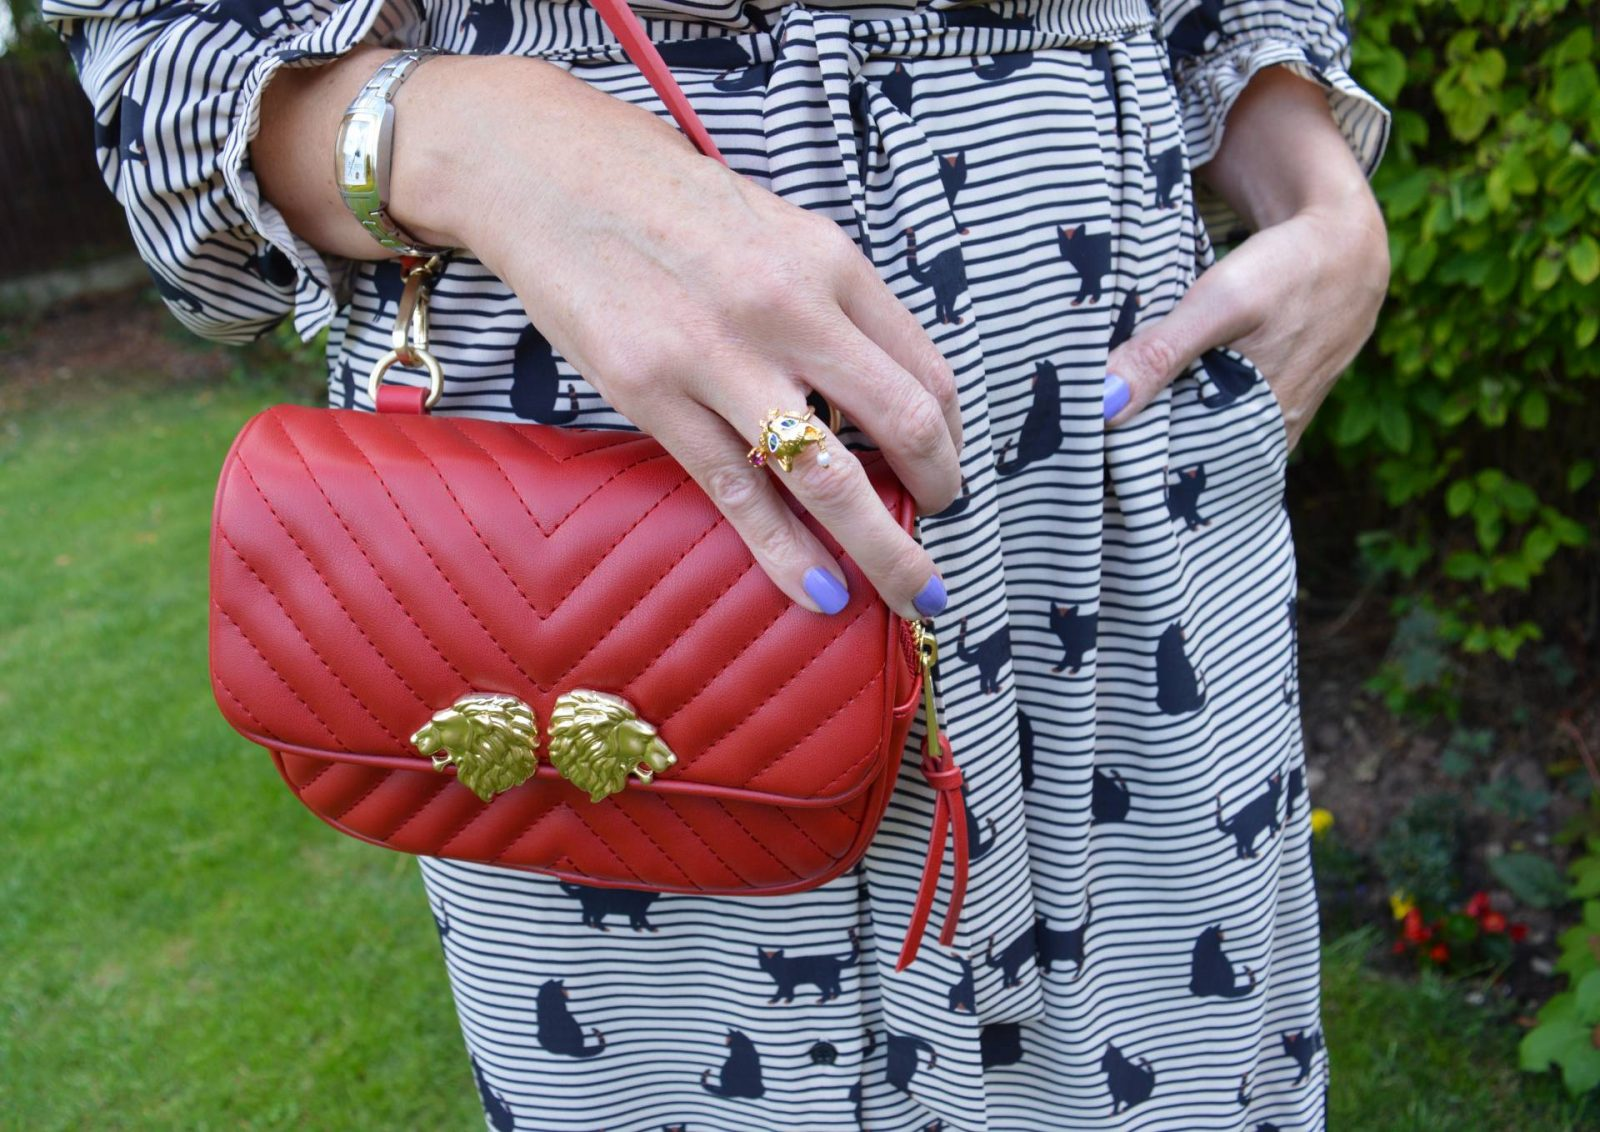 Cat print shirt dress with red accessories, Les Nereides cat ring, Zara red belt bag